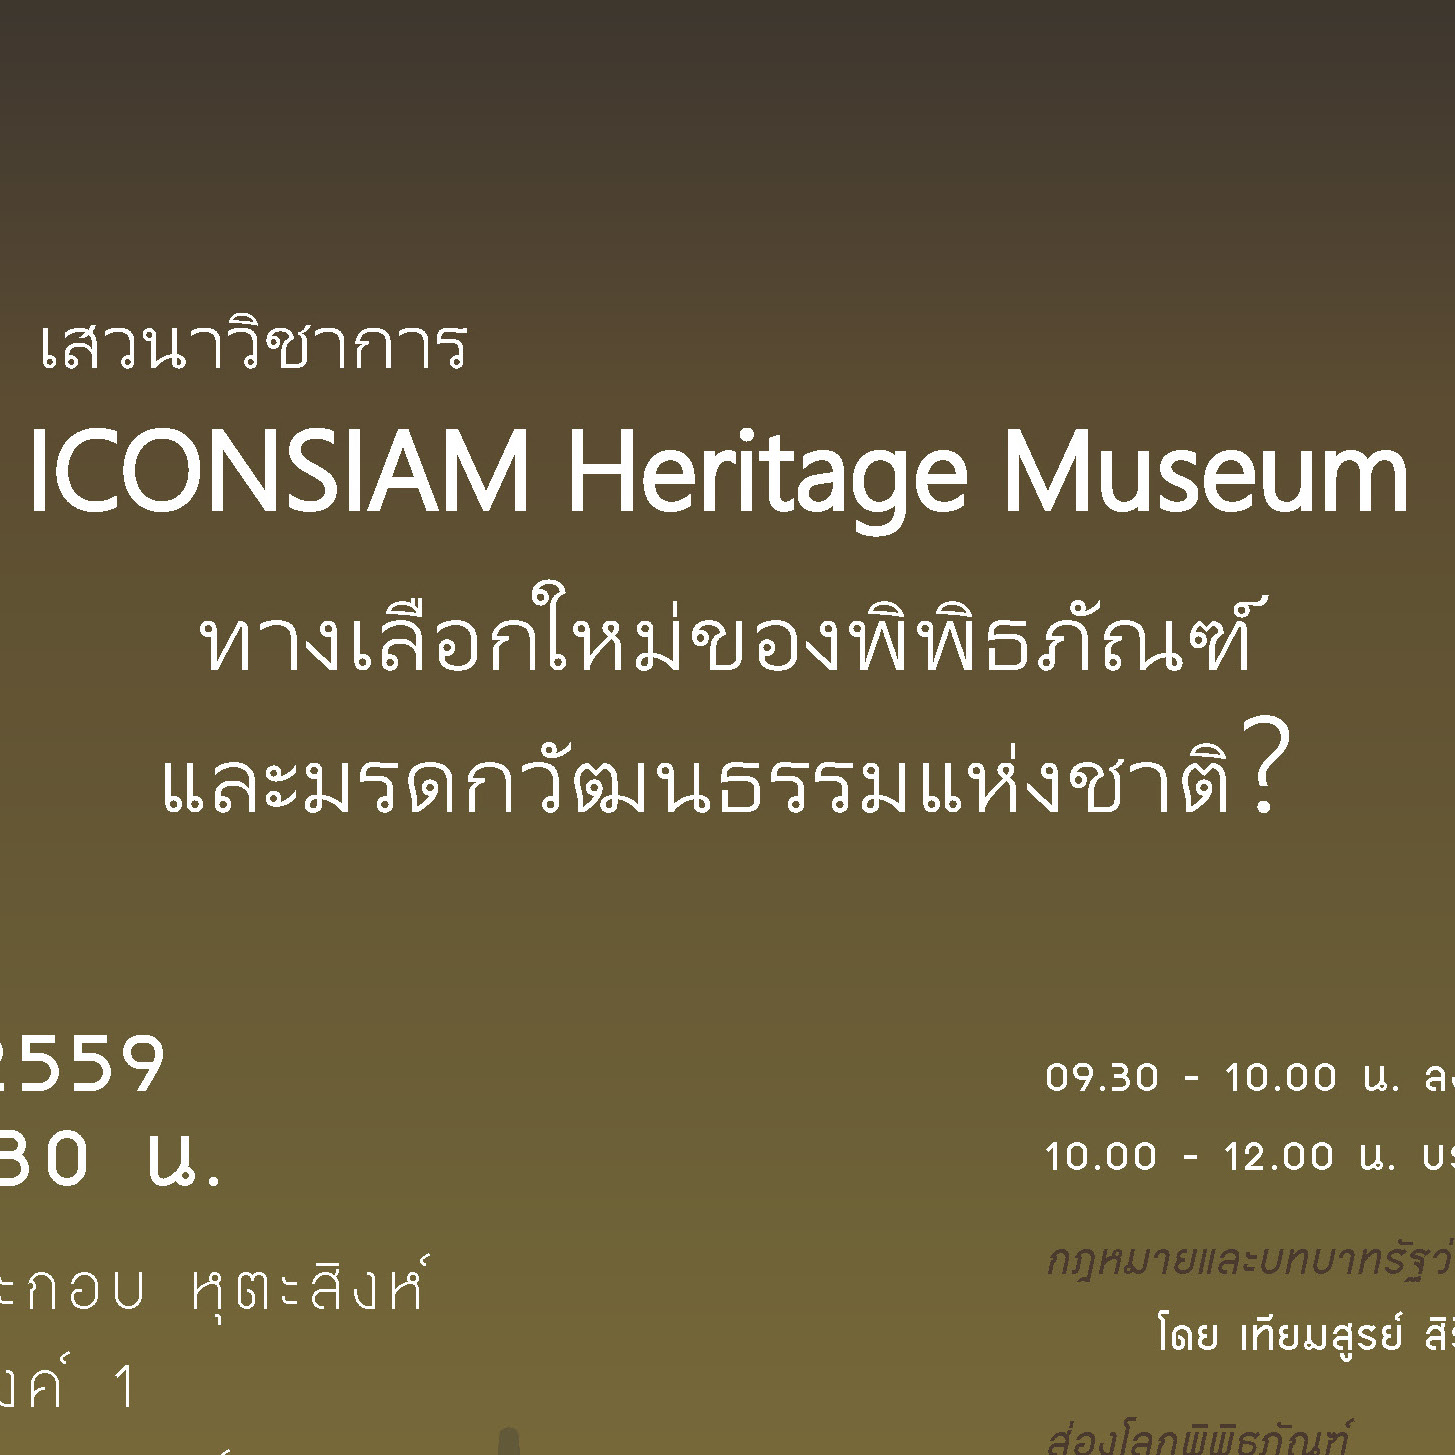 iconsiam and national heritage thumb